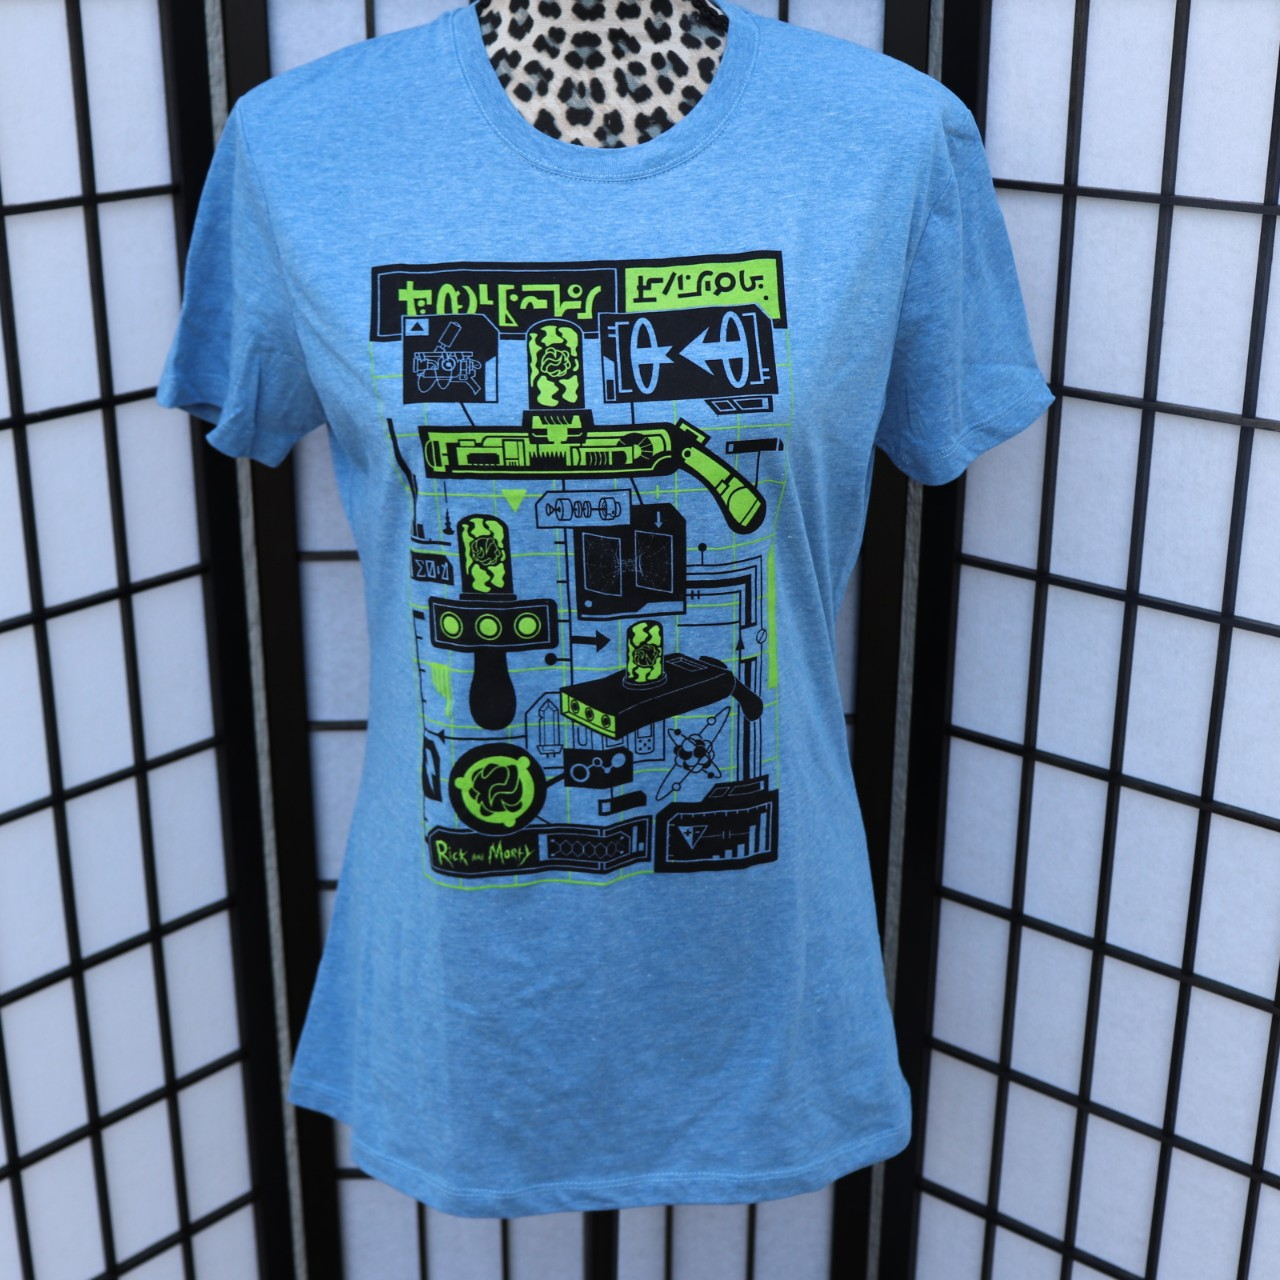 Product Image 1 - Rick and Morty t-shirt. Exclusive